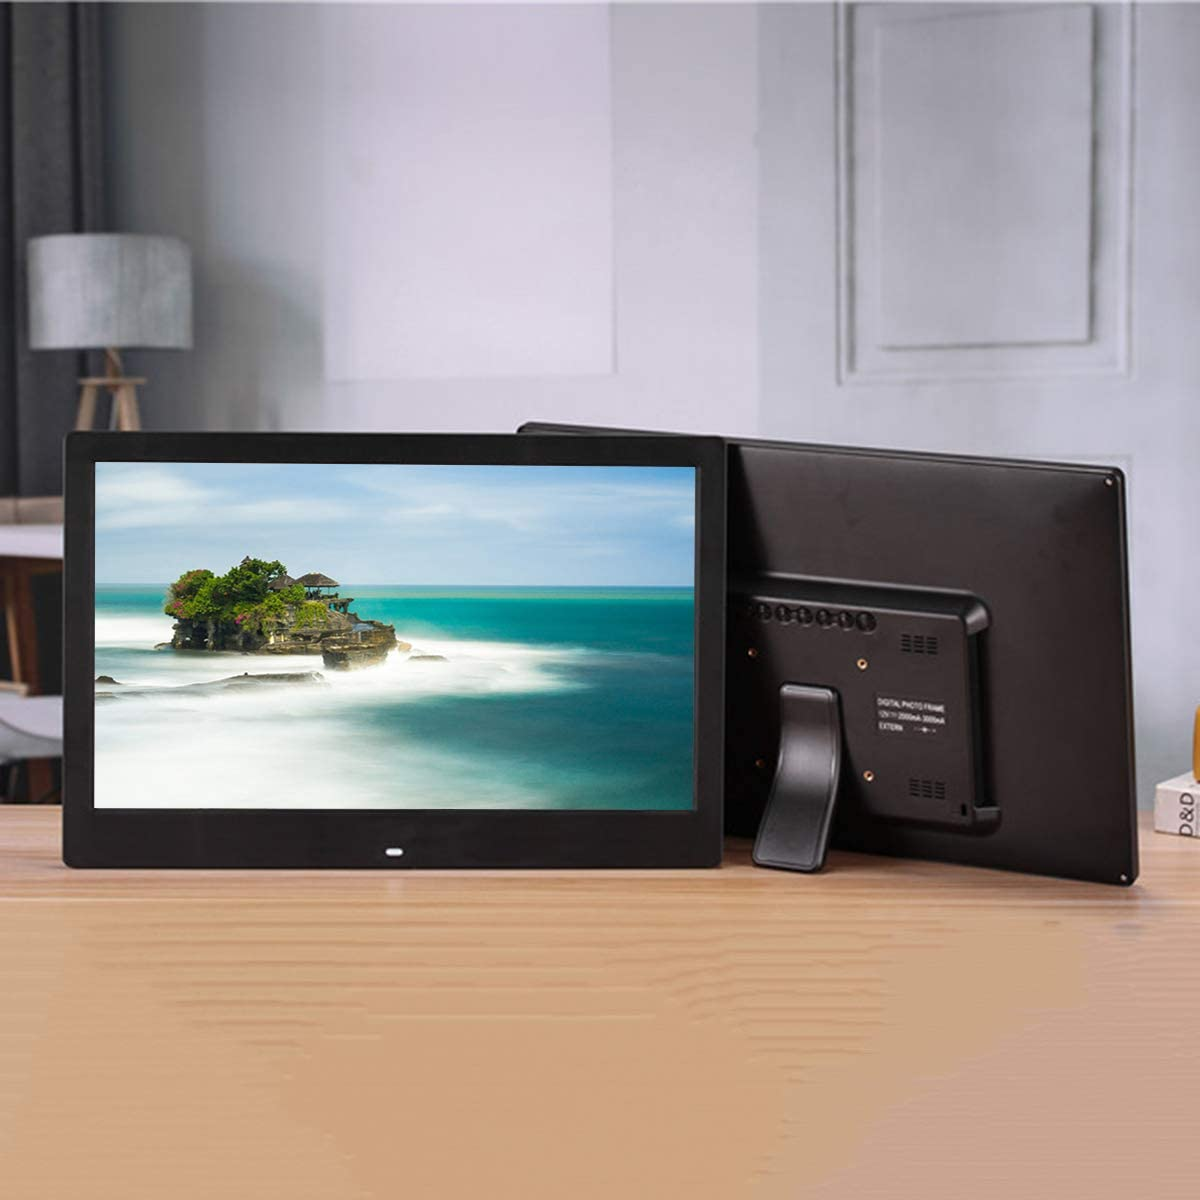 Music//Video//Picture Playback Black Color//White Color 17.3 inch Home Electronic Photo Frame Full Viewing Angle IPS Screen 1920 /× 1080 high Resolution